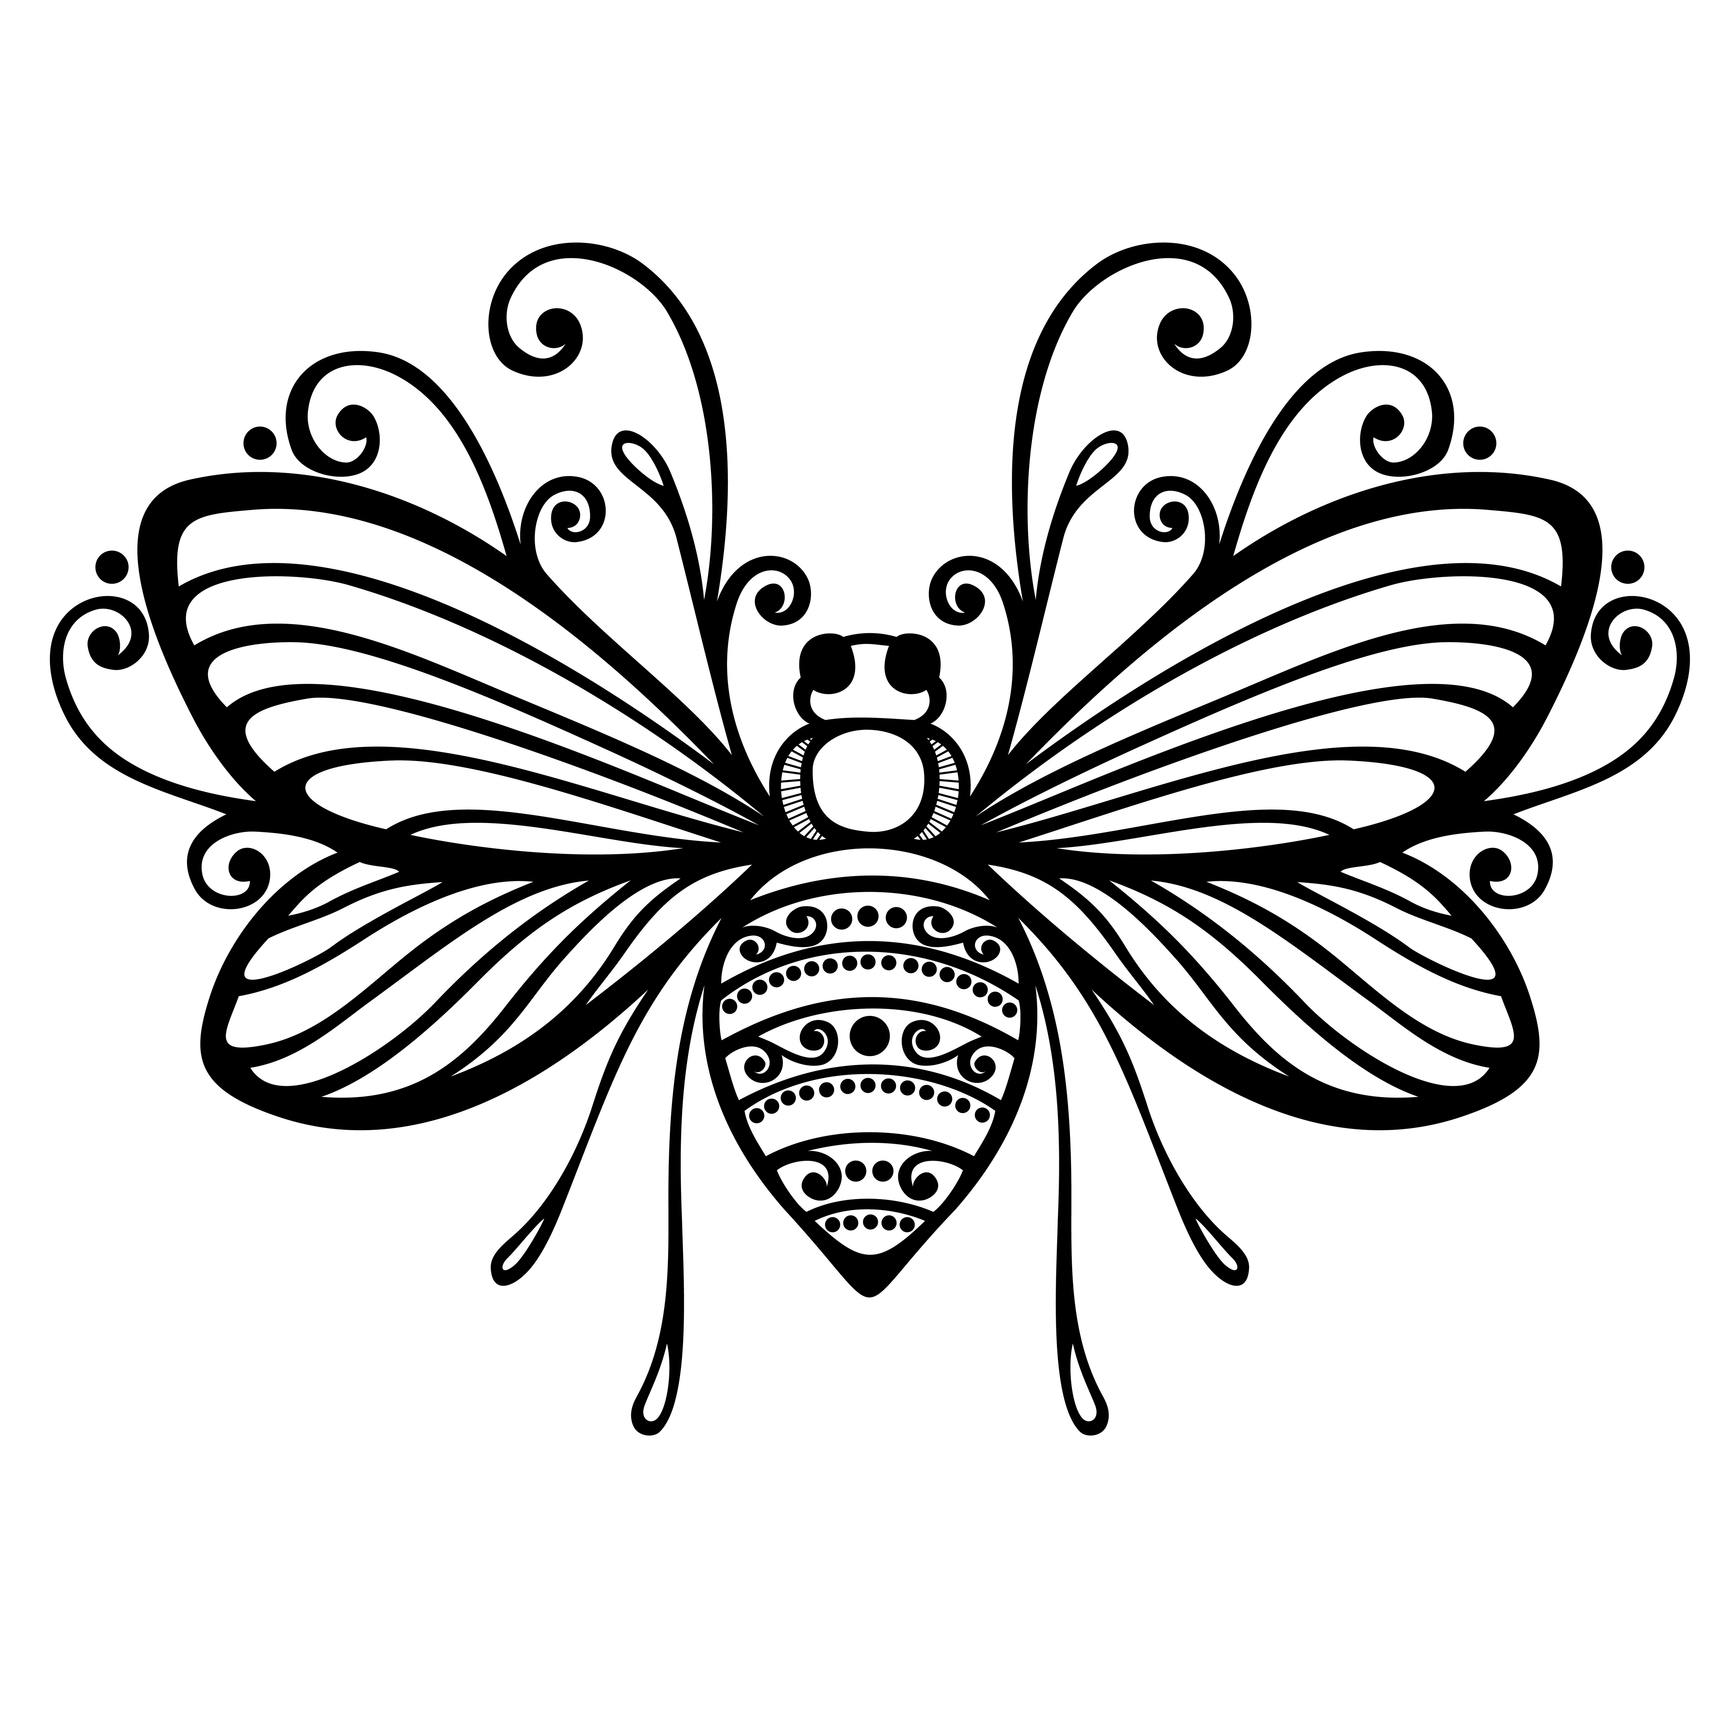 Free Bee Outline Download Free Clip Art Free Clip Art On